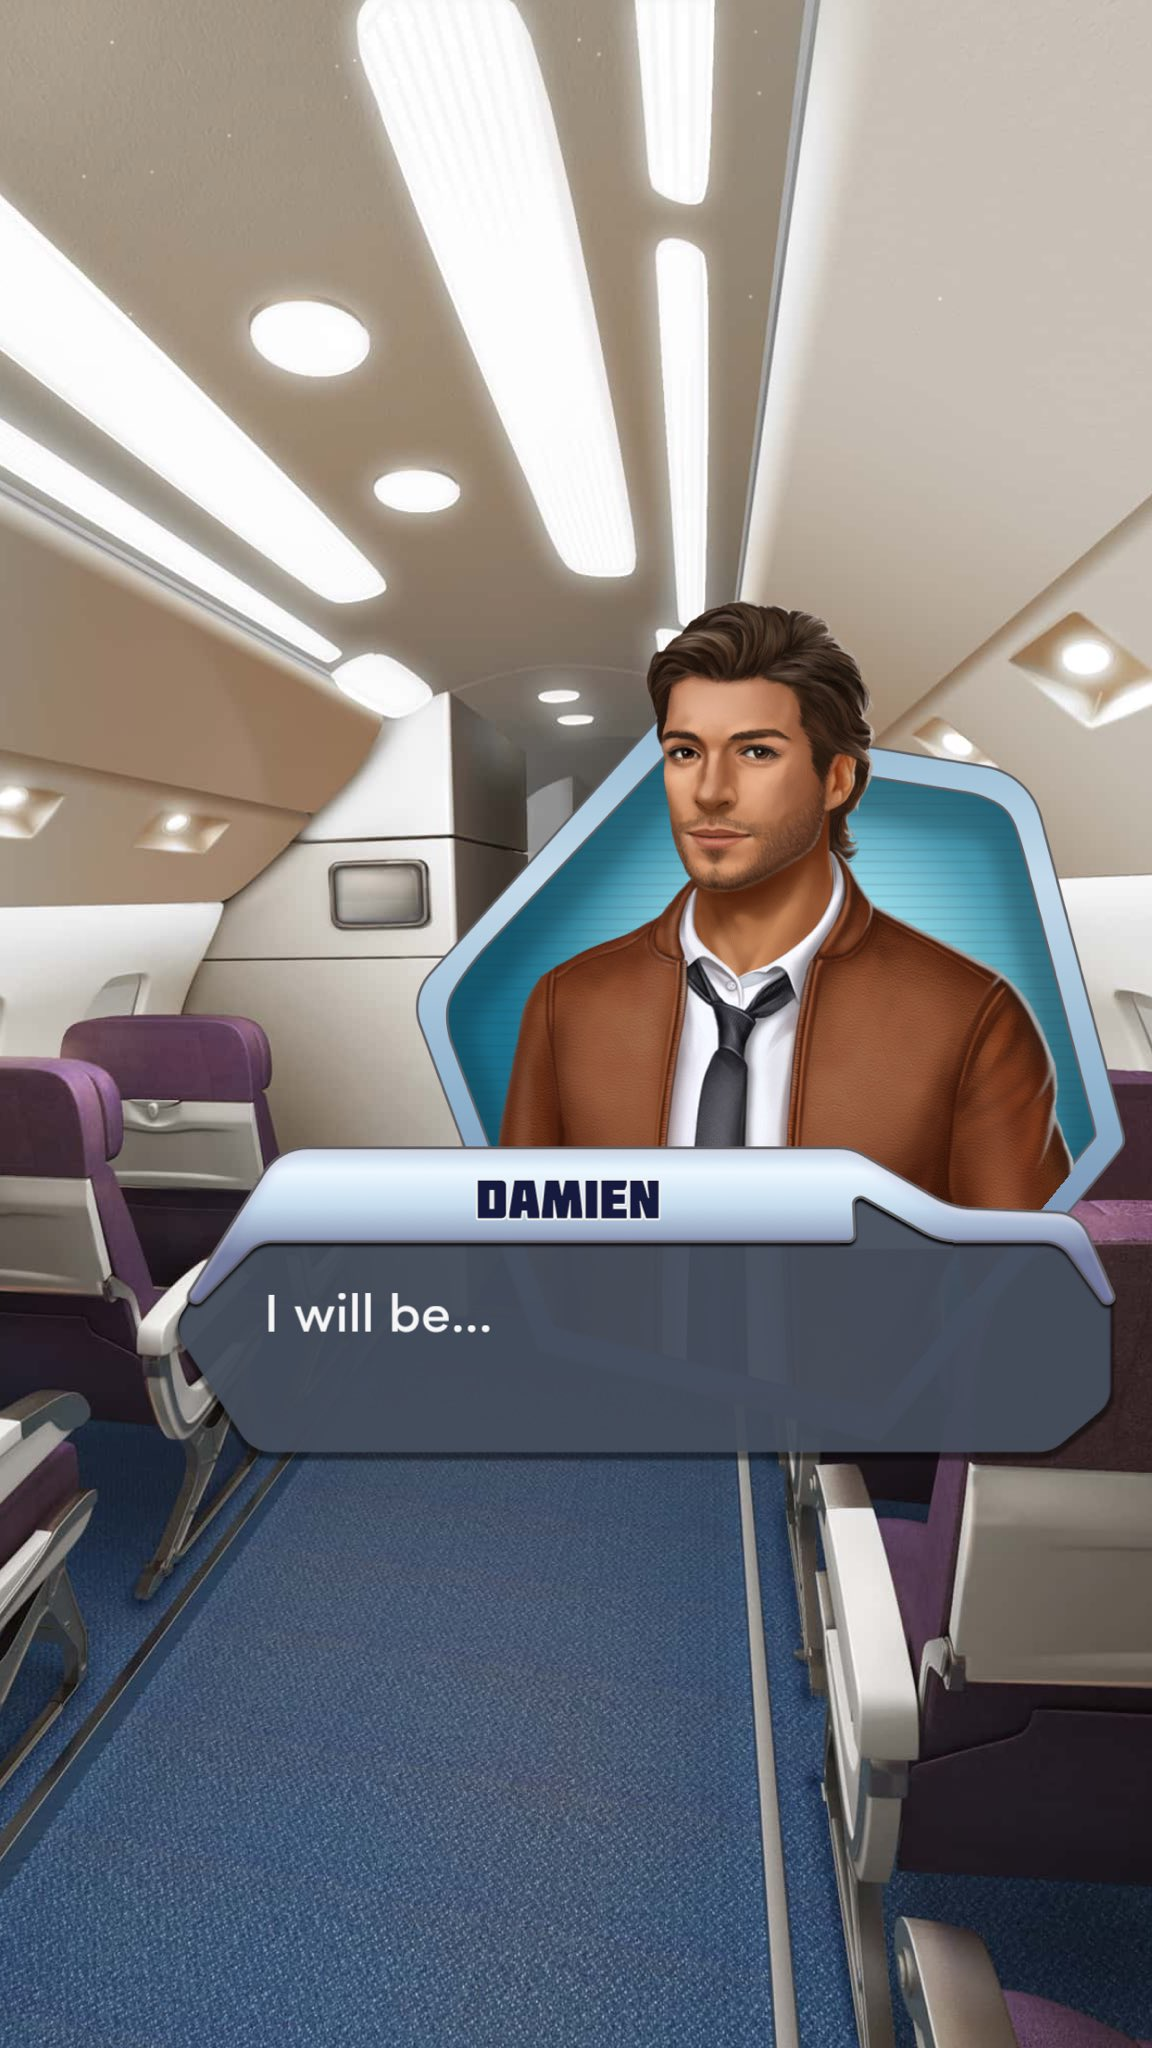 Can't help thinking this game character might possibly? be modeled after @mishacollins #castiel. Nah, can't be �� https://t.co/gPWgY6z2MT